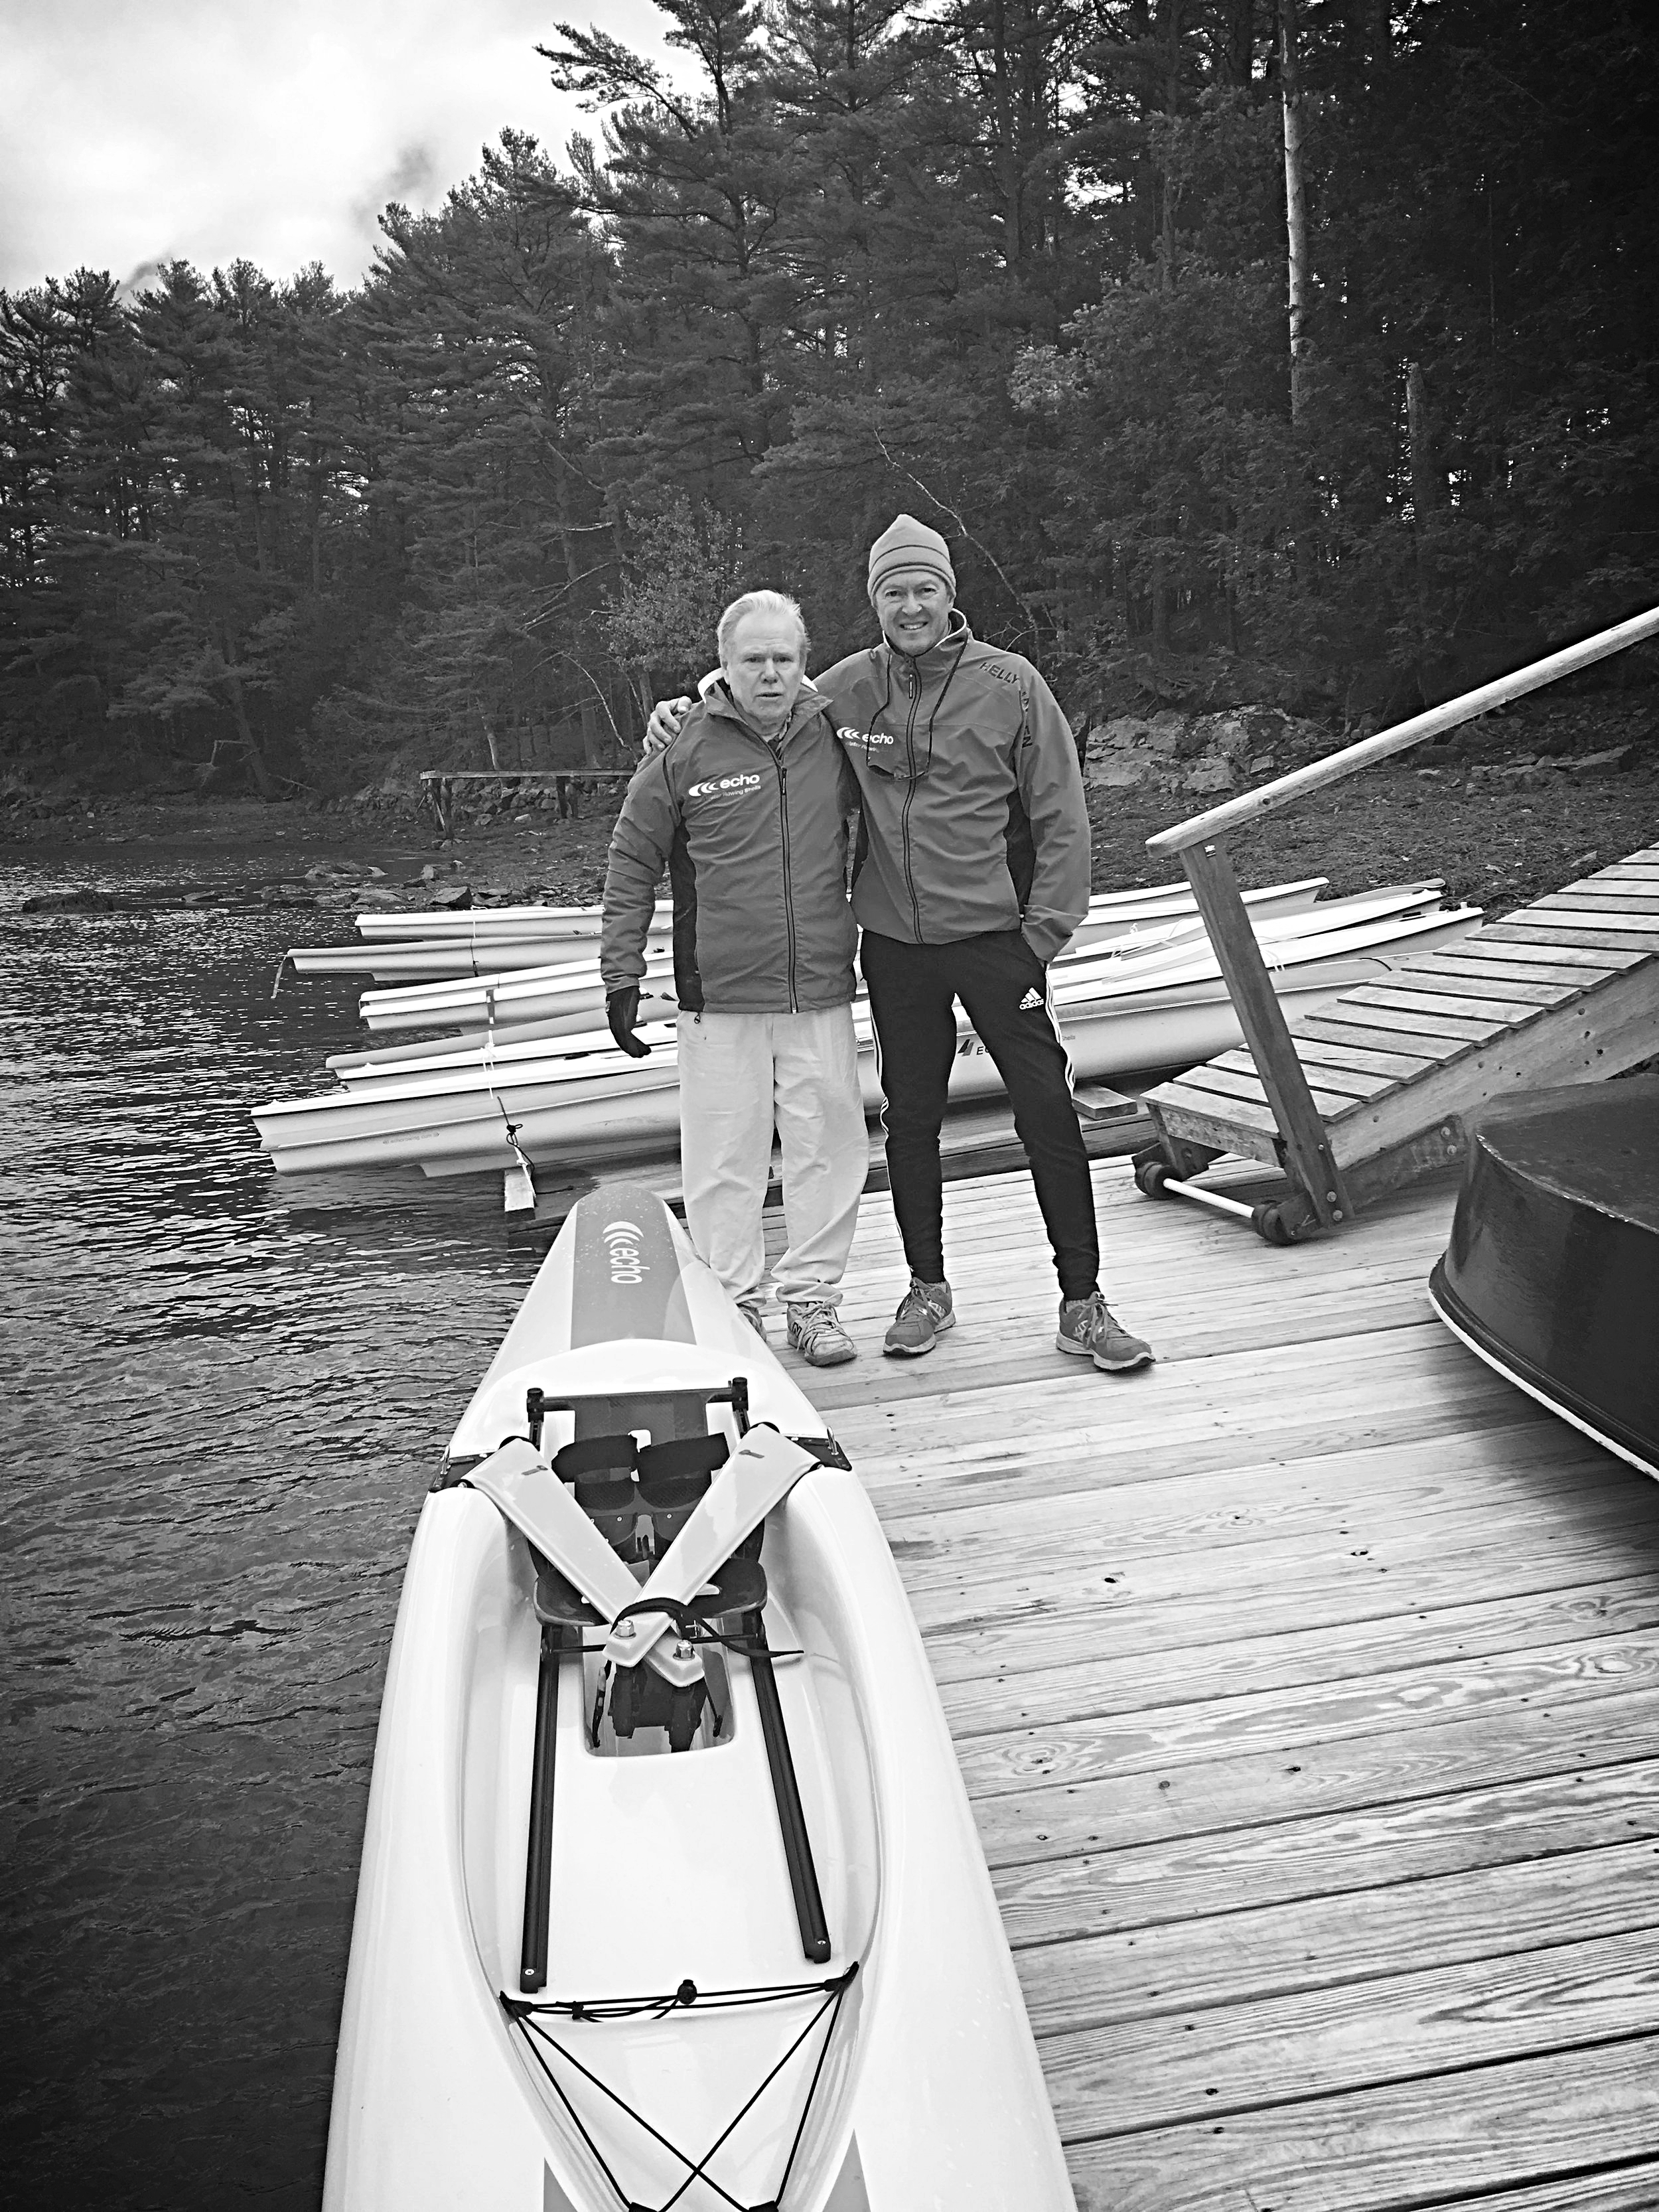 Steve Wood and Douglas Martin share a moment at the Chauncey Creek Boathouse in Kittery Point, Maine